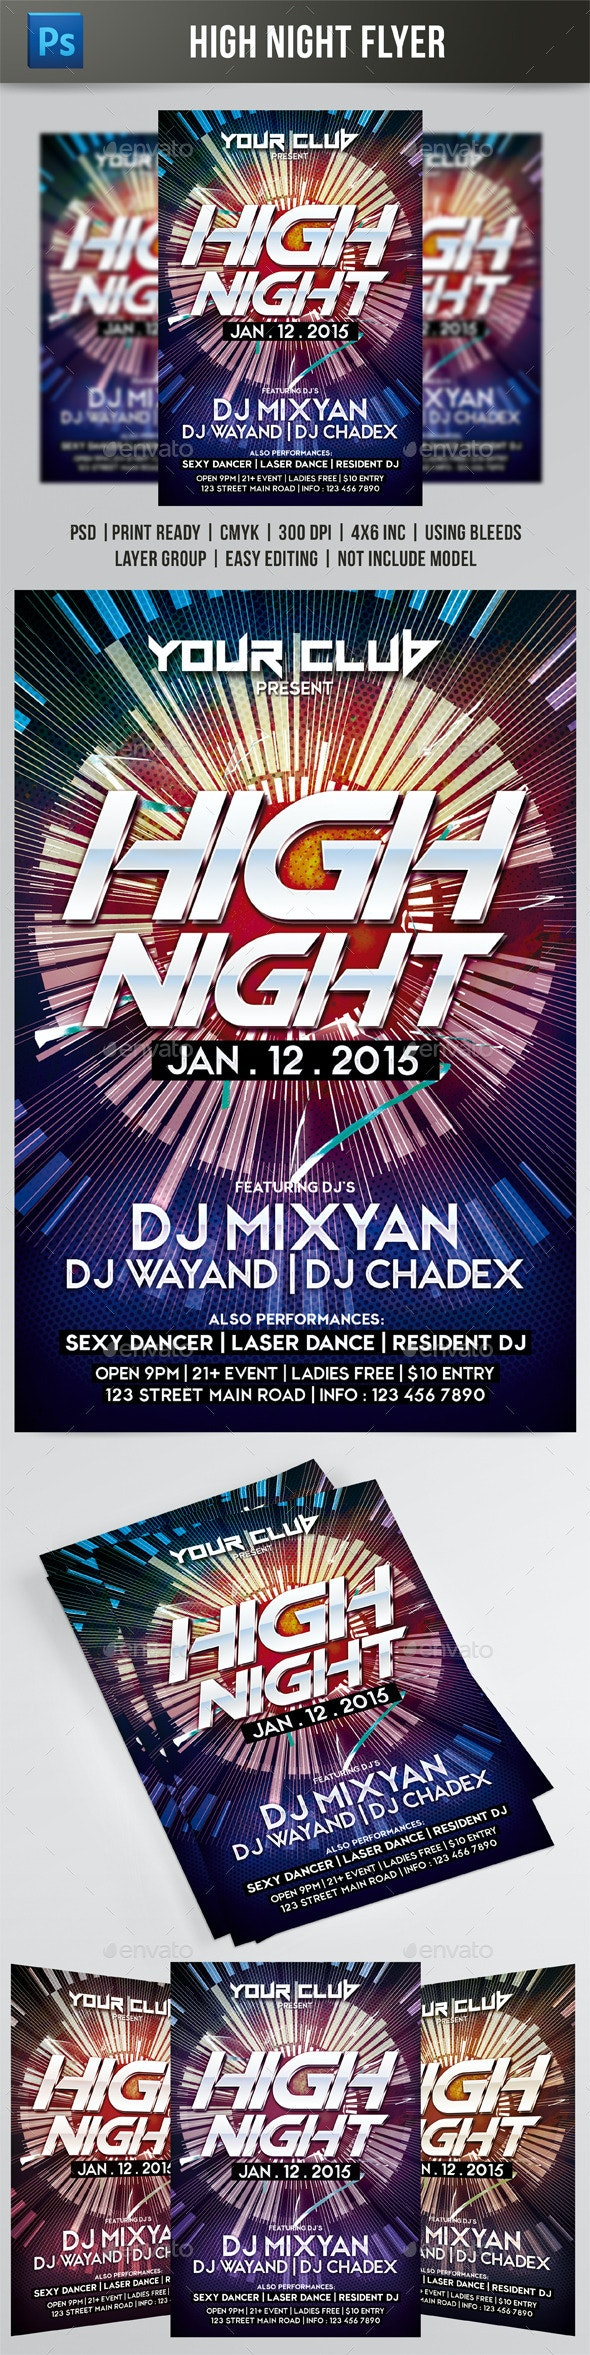 High Night Flyer - Events Flyers